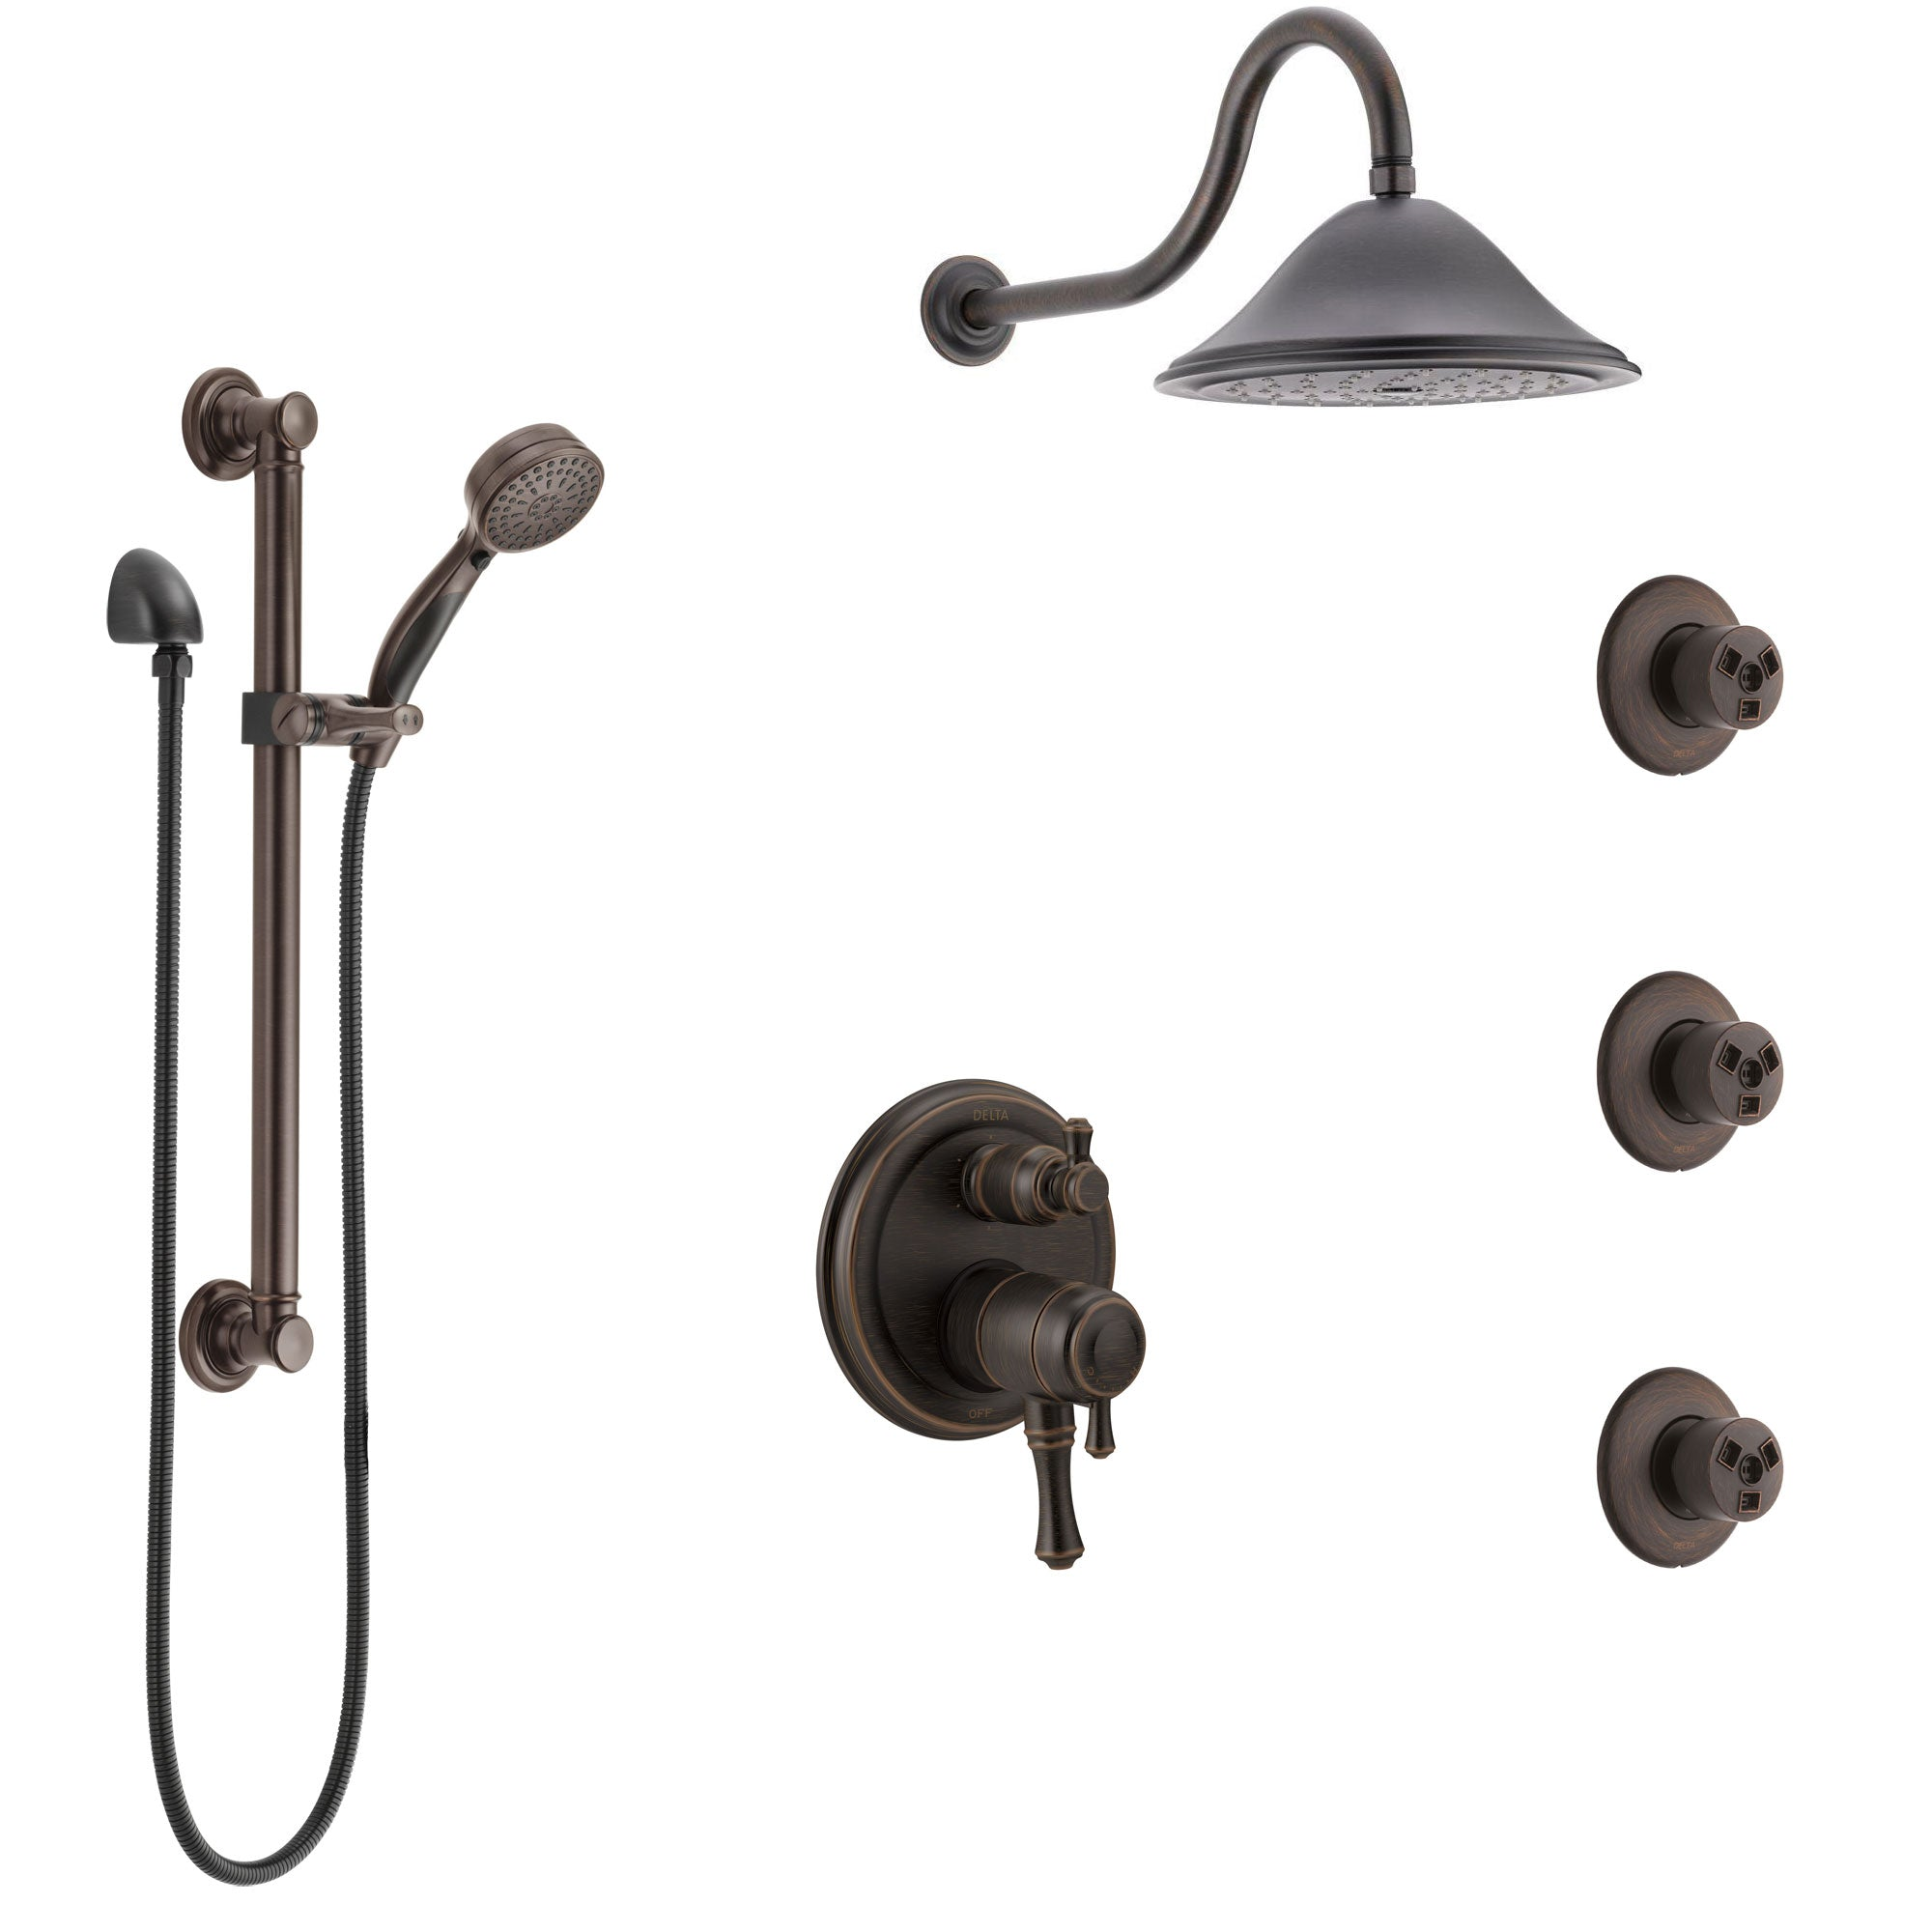 Delta Cassidy Venetian Bronze Shower System with Dual Control Handle, Integrated Diverter, Showerhead, 3 Body Sprays, Grab Bar Hand Spray SS27997RB2